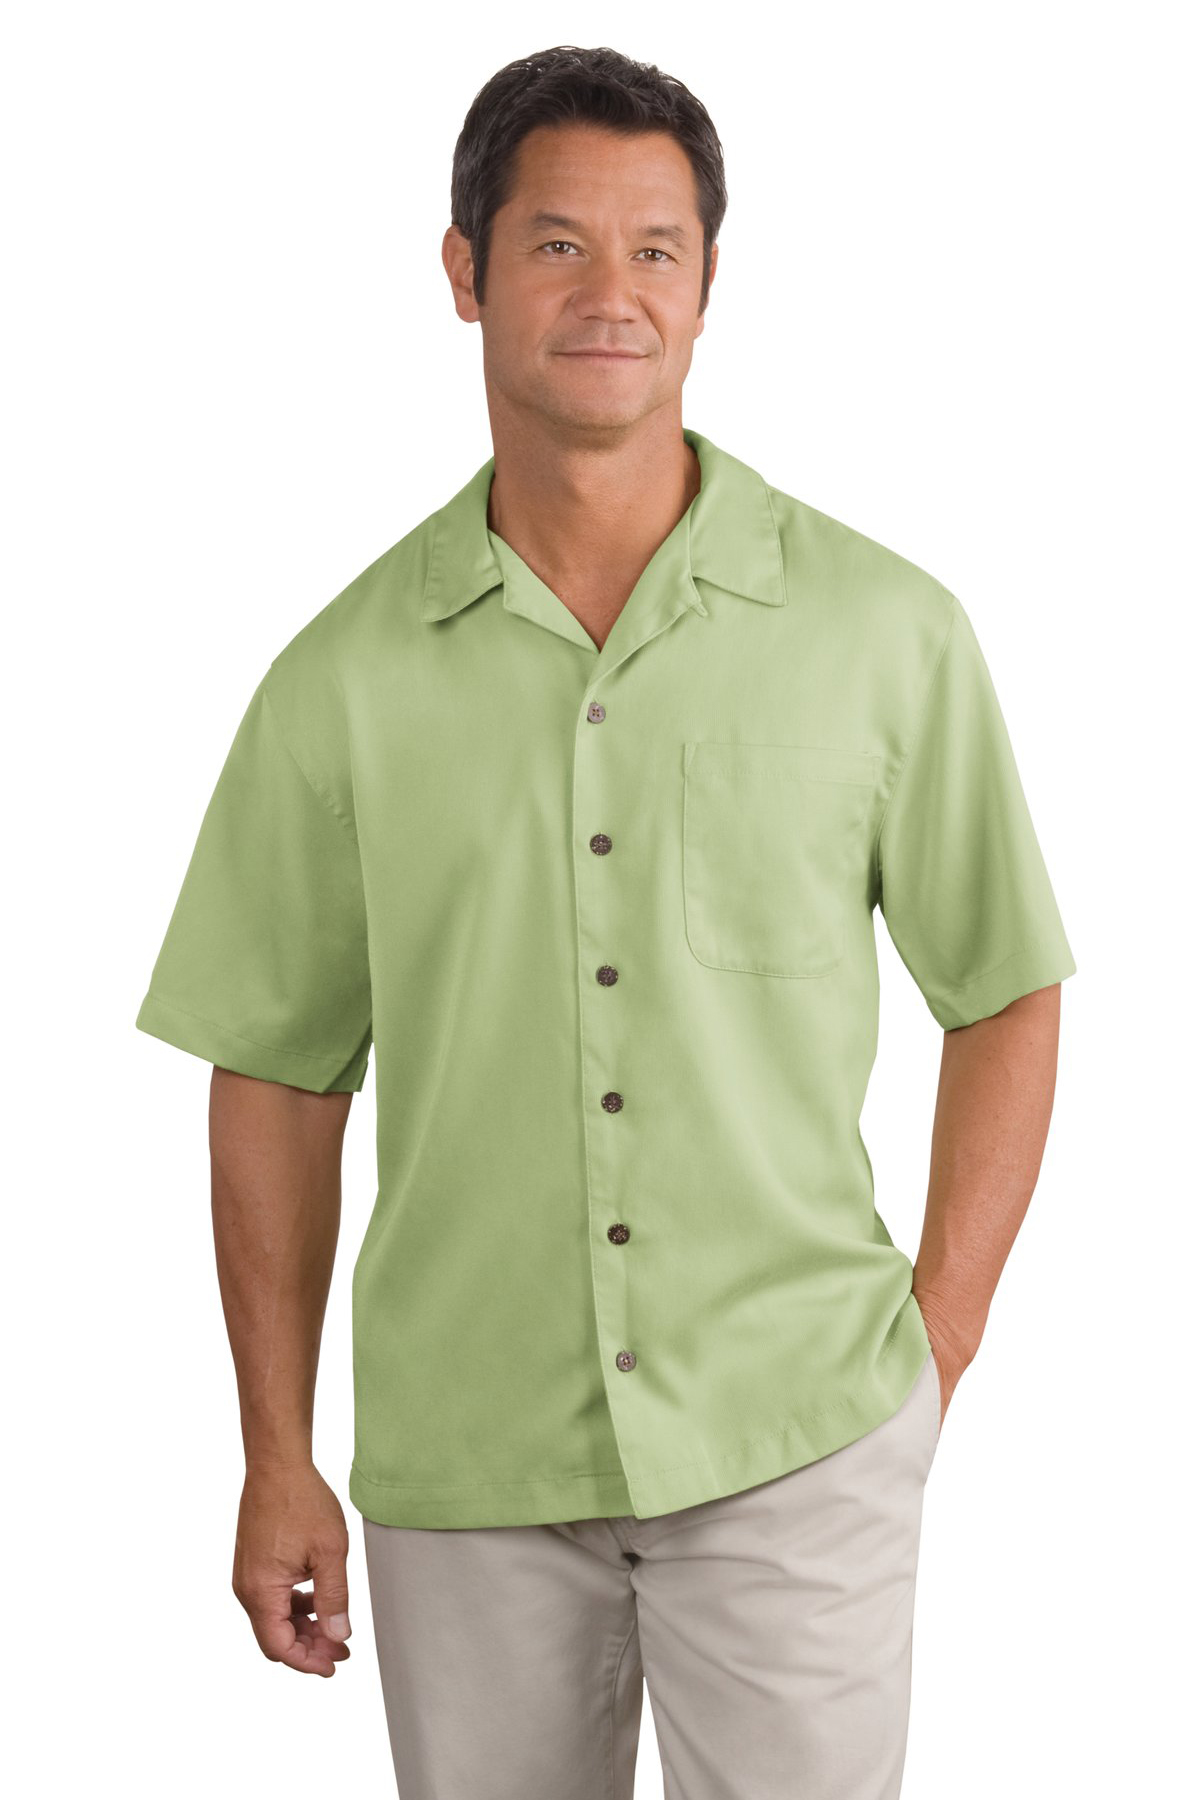 Woven-Shirts-Easy-Care-39